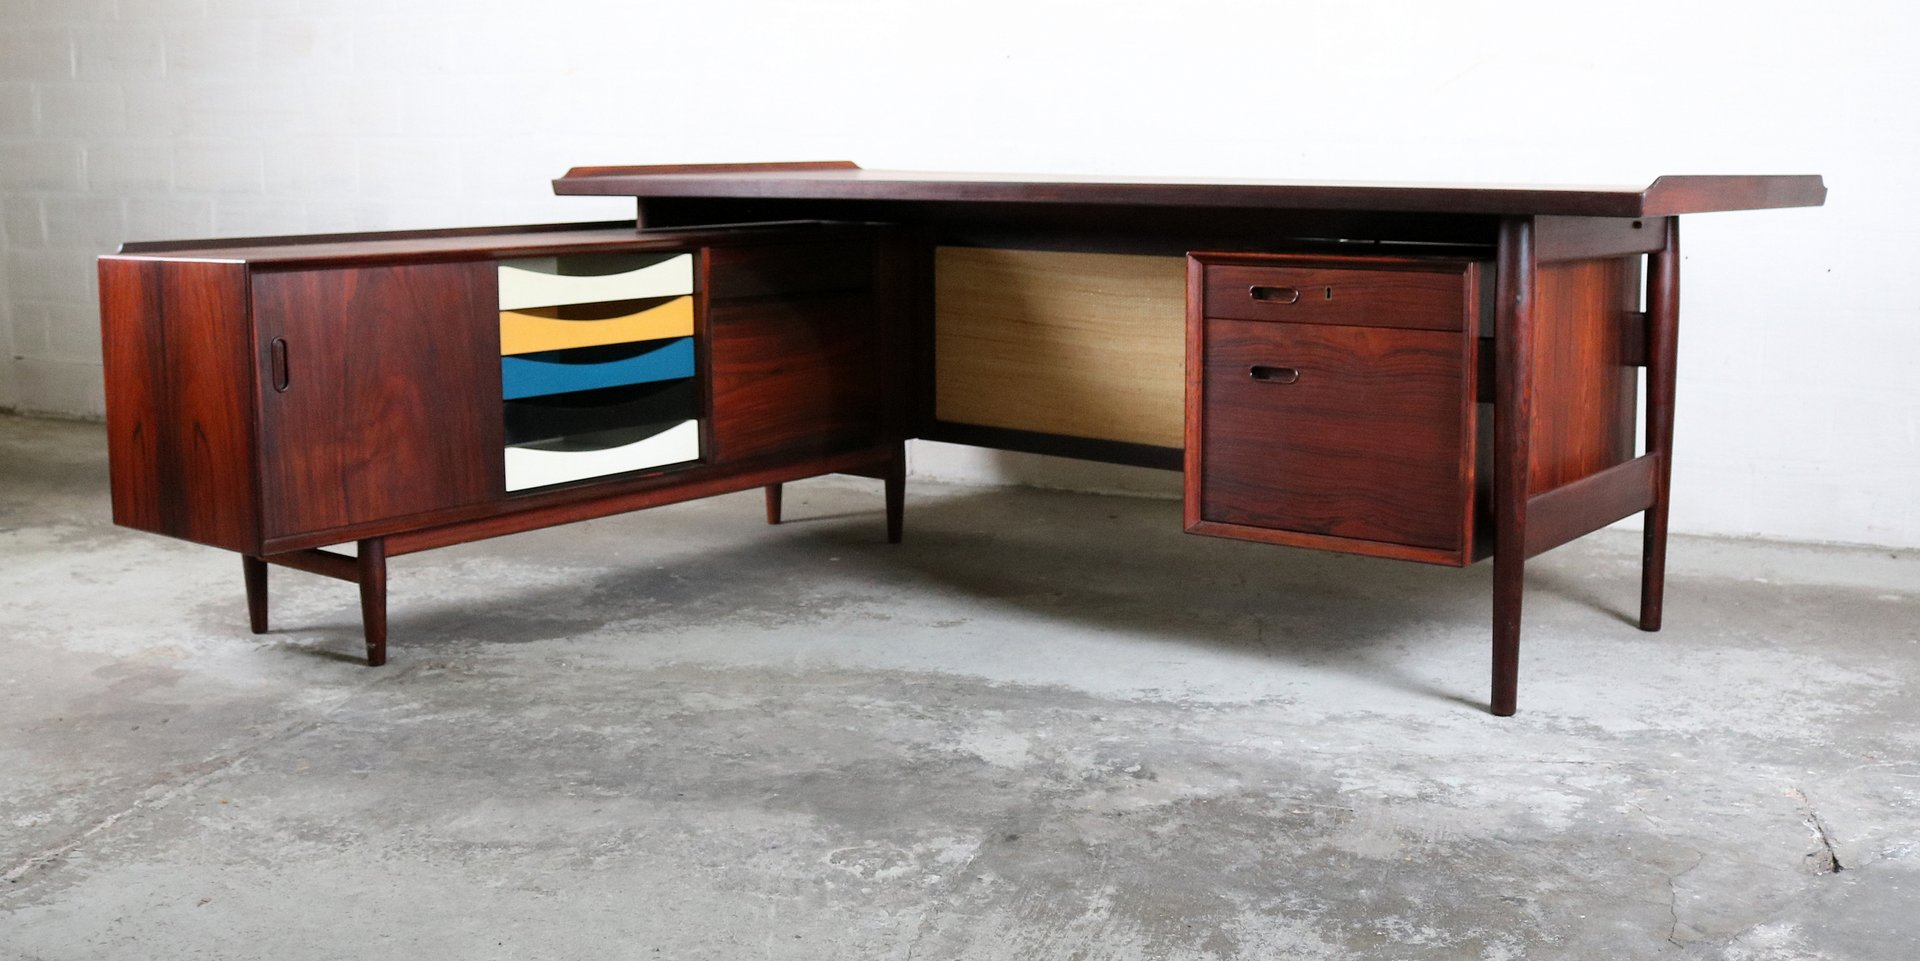 executive desk by arne vodder for sibast 1960s for sale at pamono. Black Bedroom Furniture Sets. Home Design Ideas